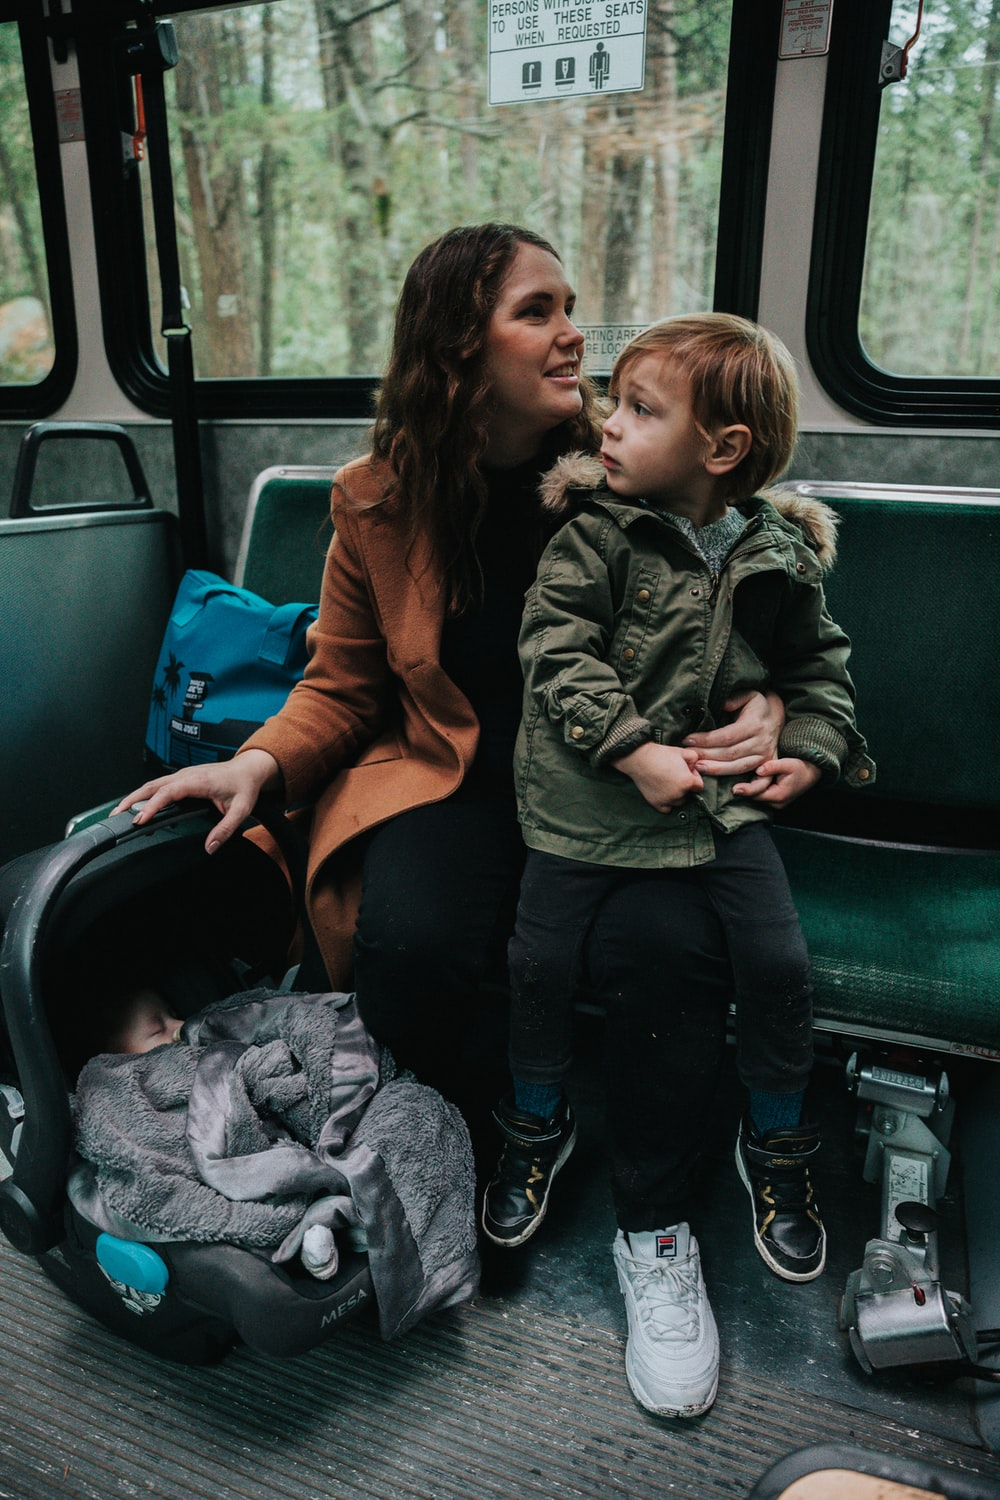 shallow focus photo of boy sitting on woman's lap